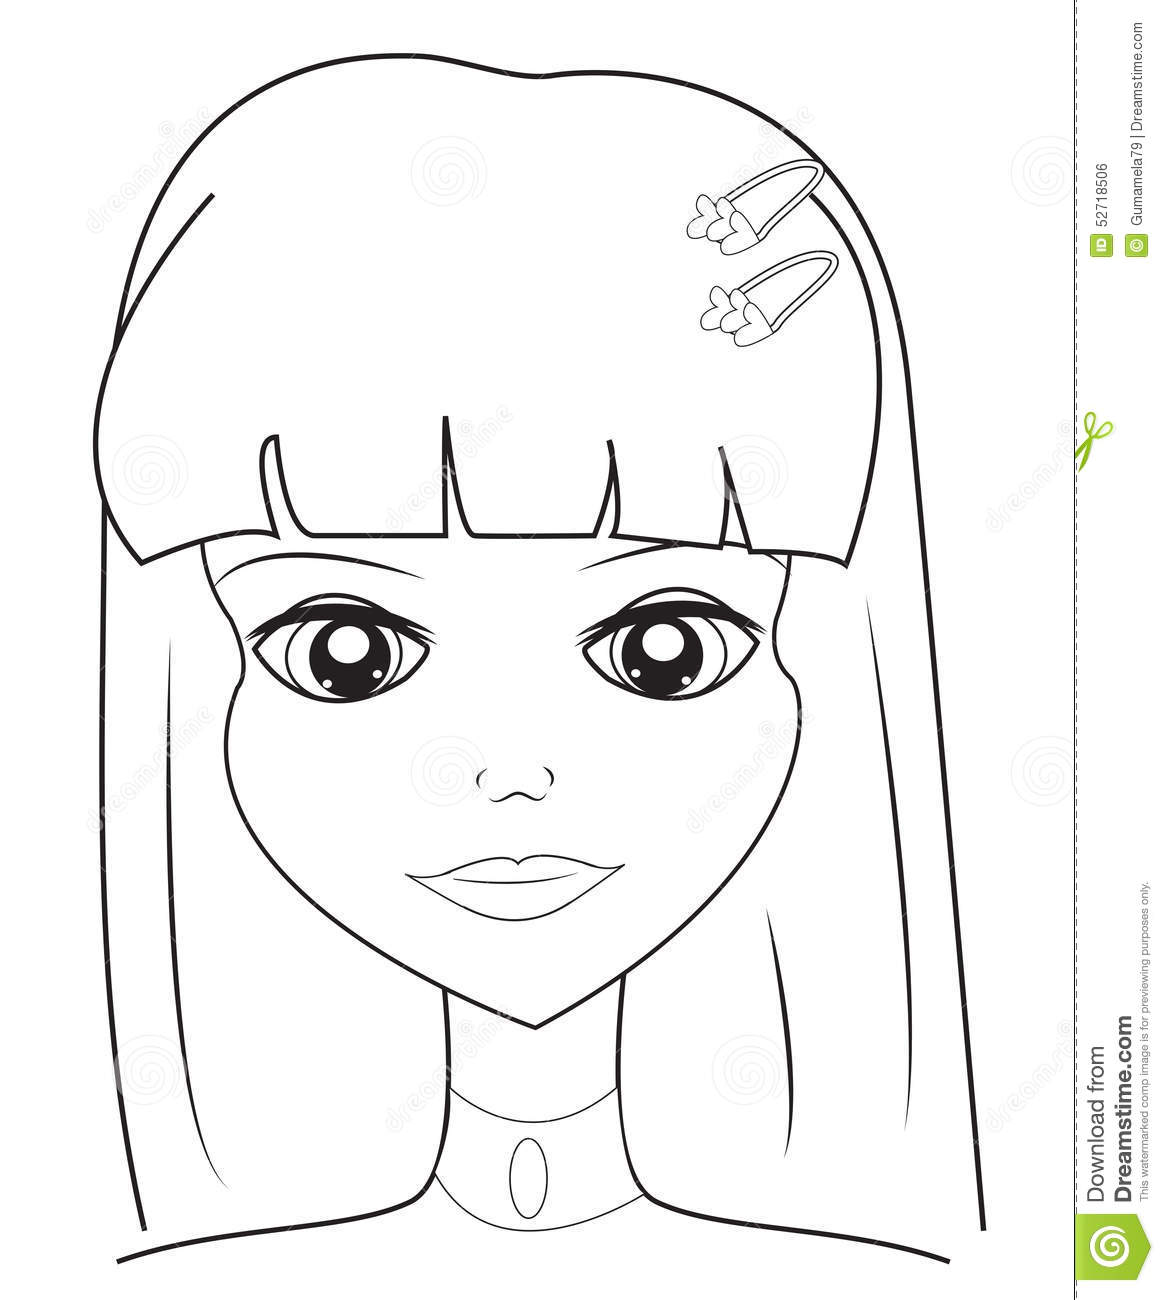 coloring pages childrens face - photo#31